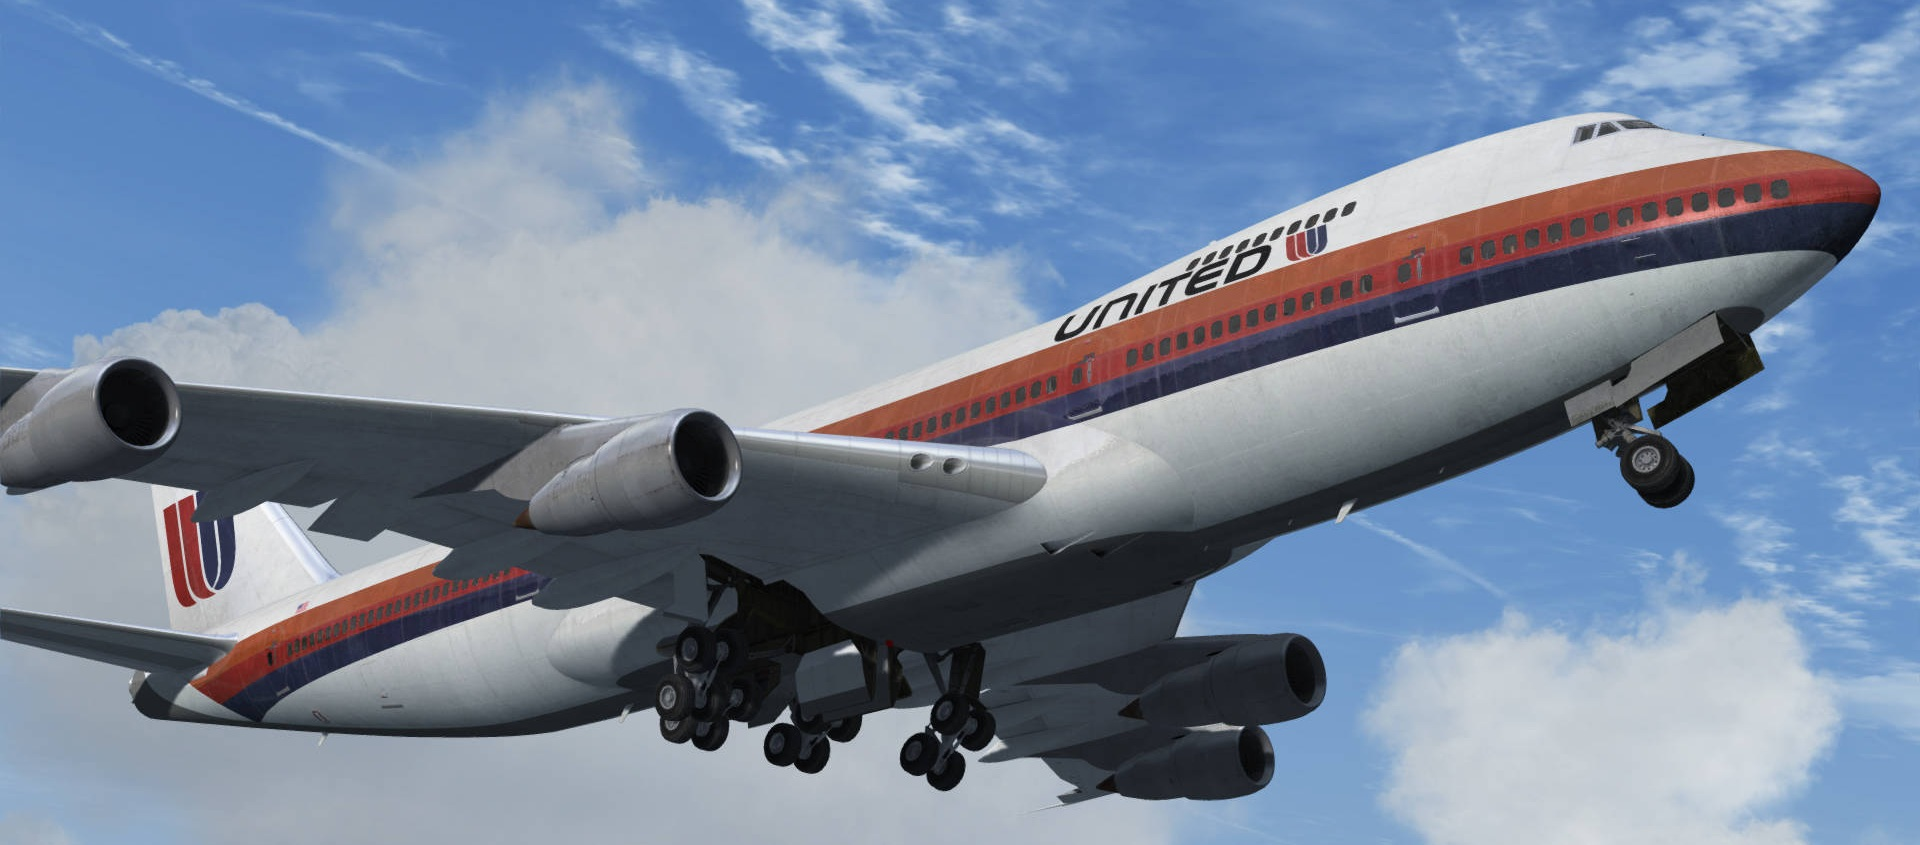 Just Flight 747 Classic: Erste Preview-Screenshots direkt aus dem Simulator